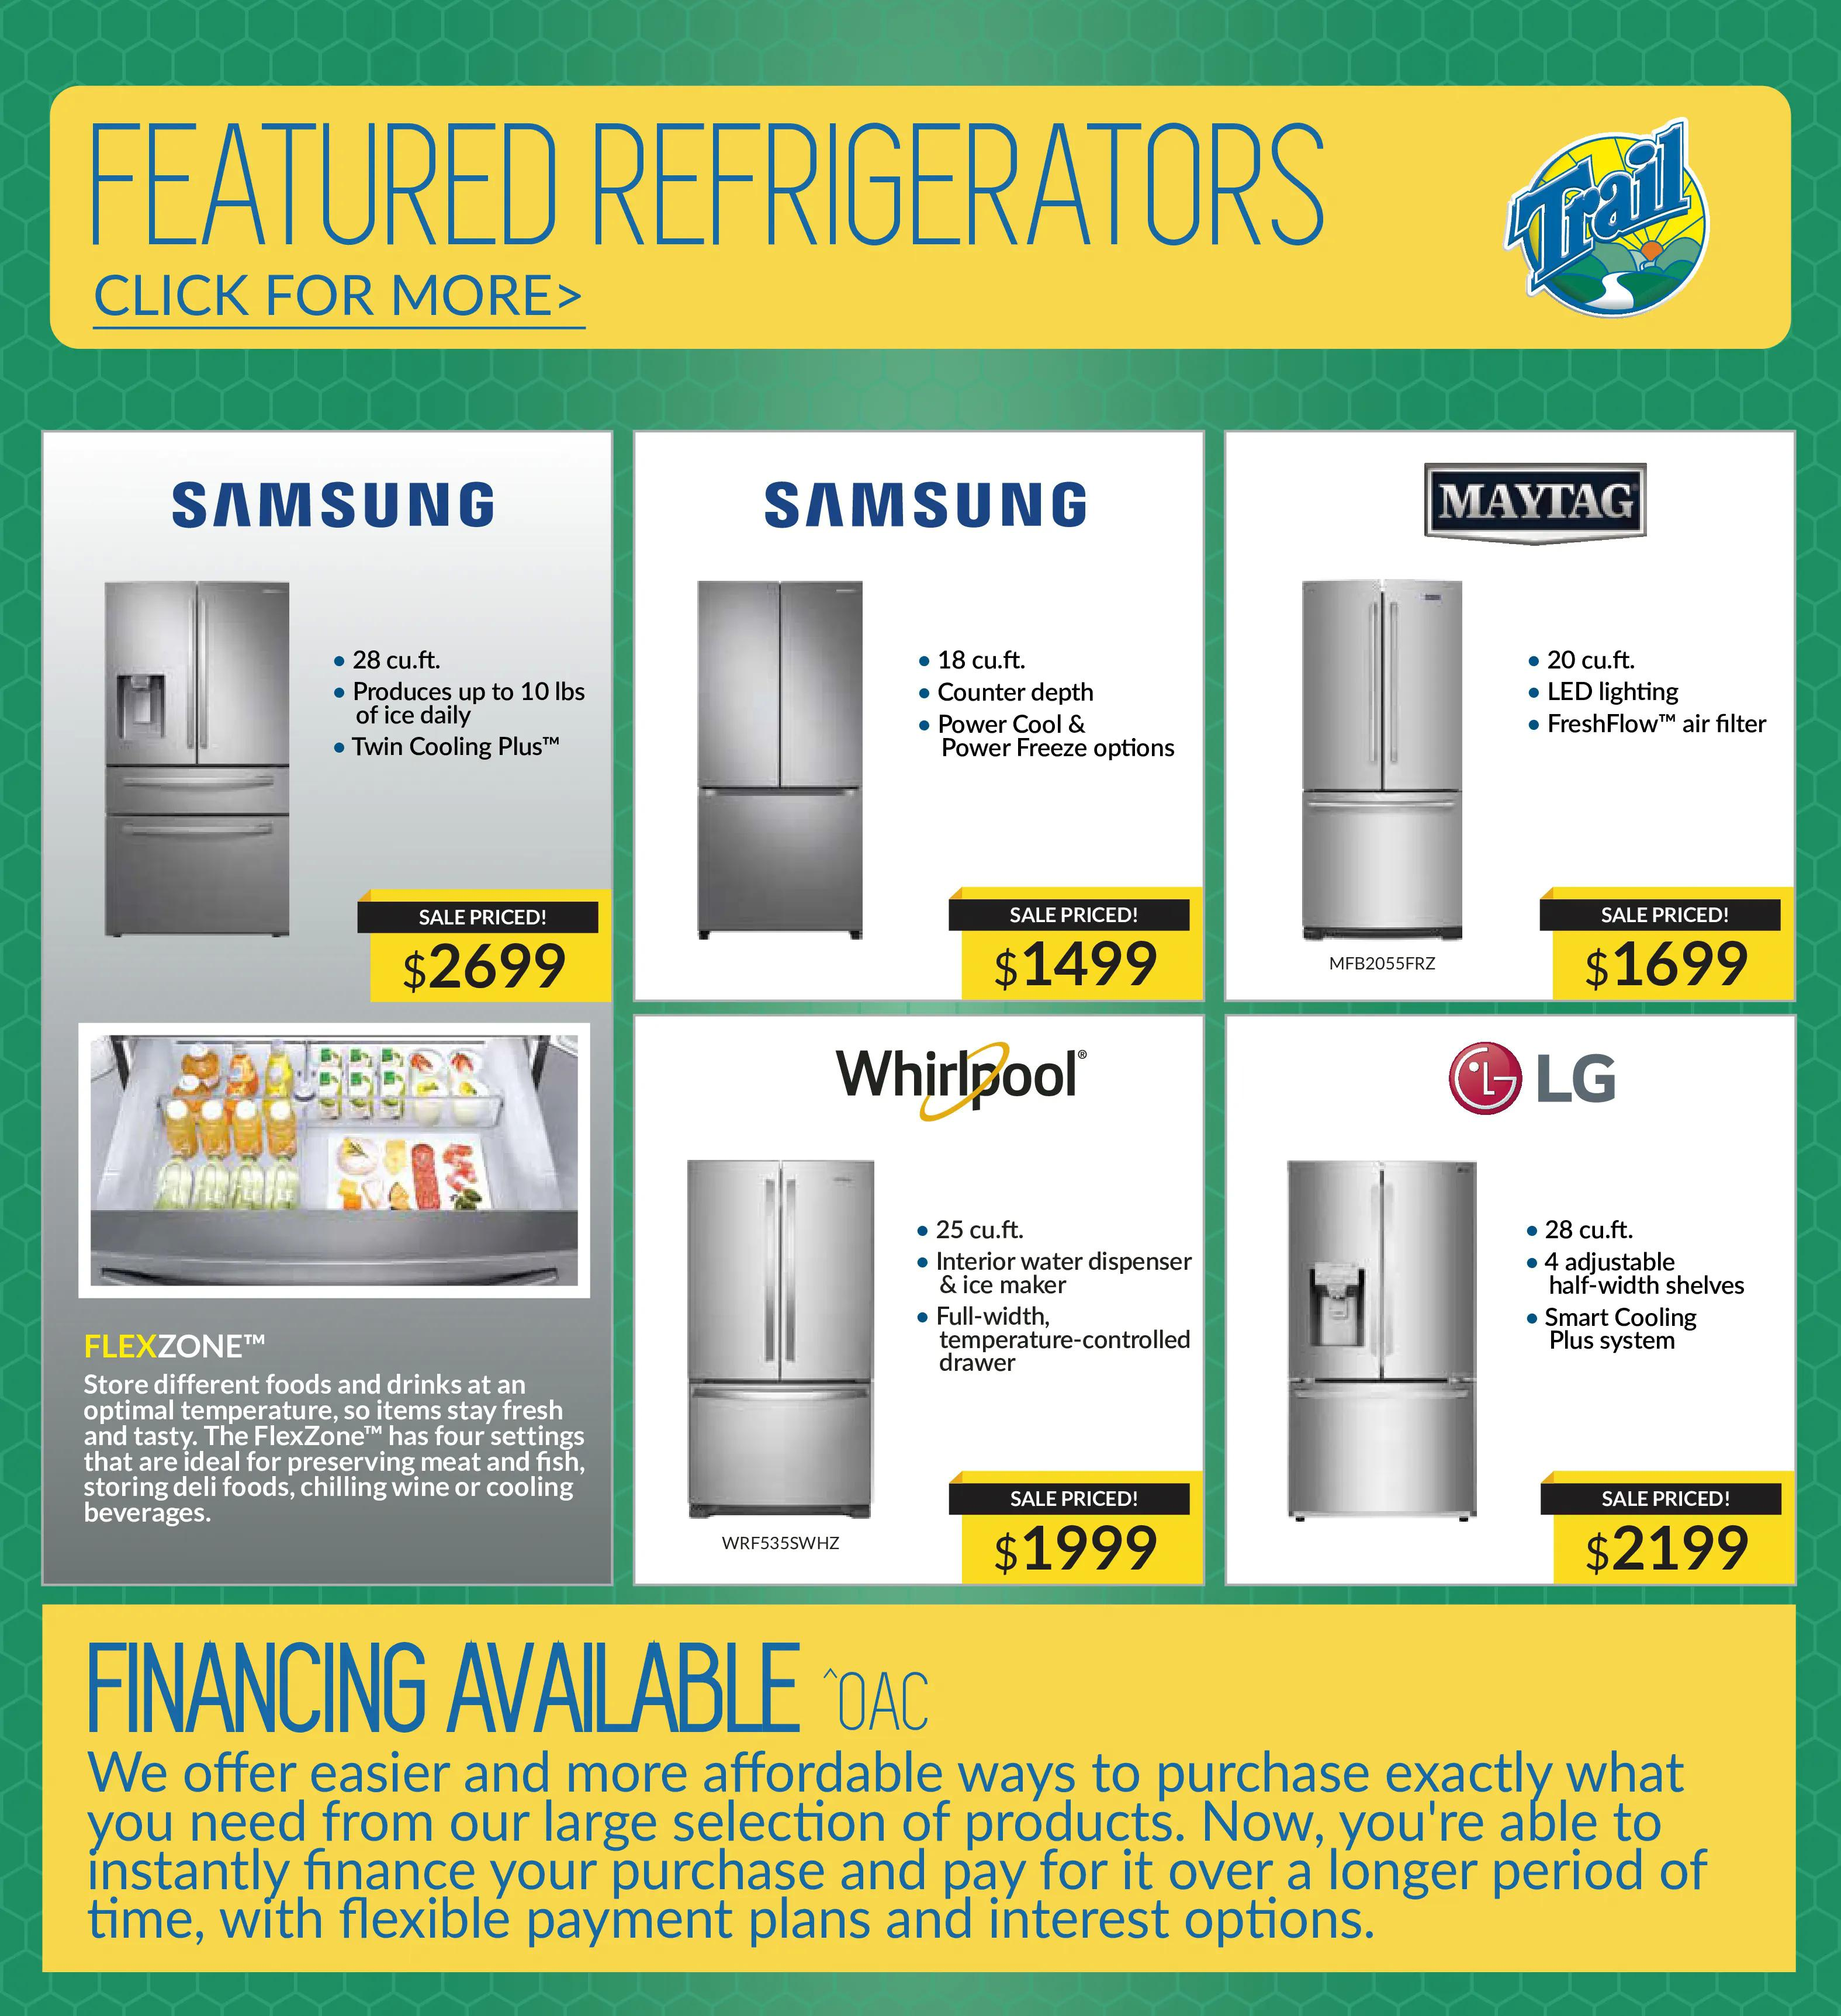 Trail Appliances - Weekly Flyer Specials - Page 2